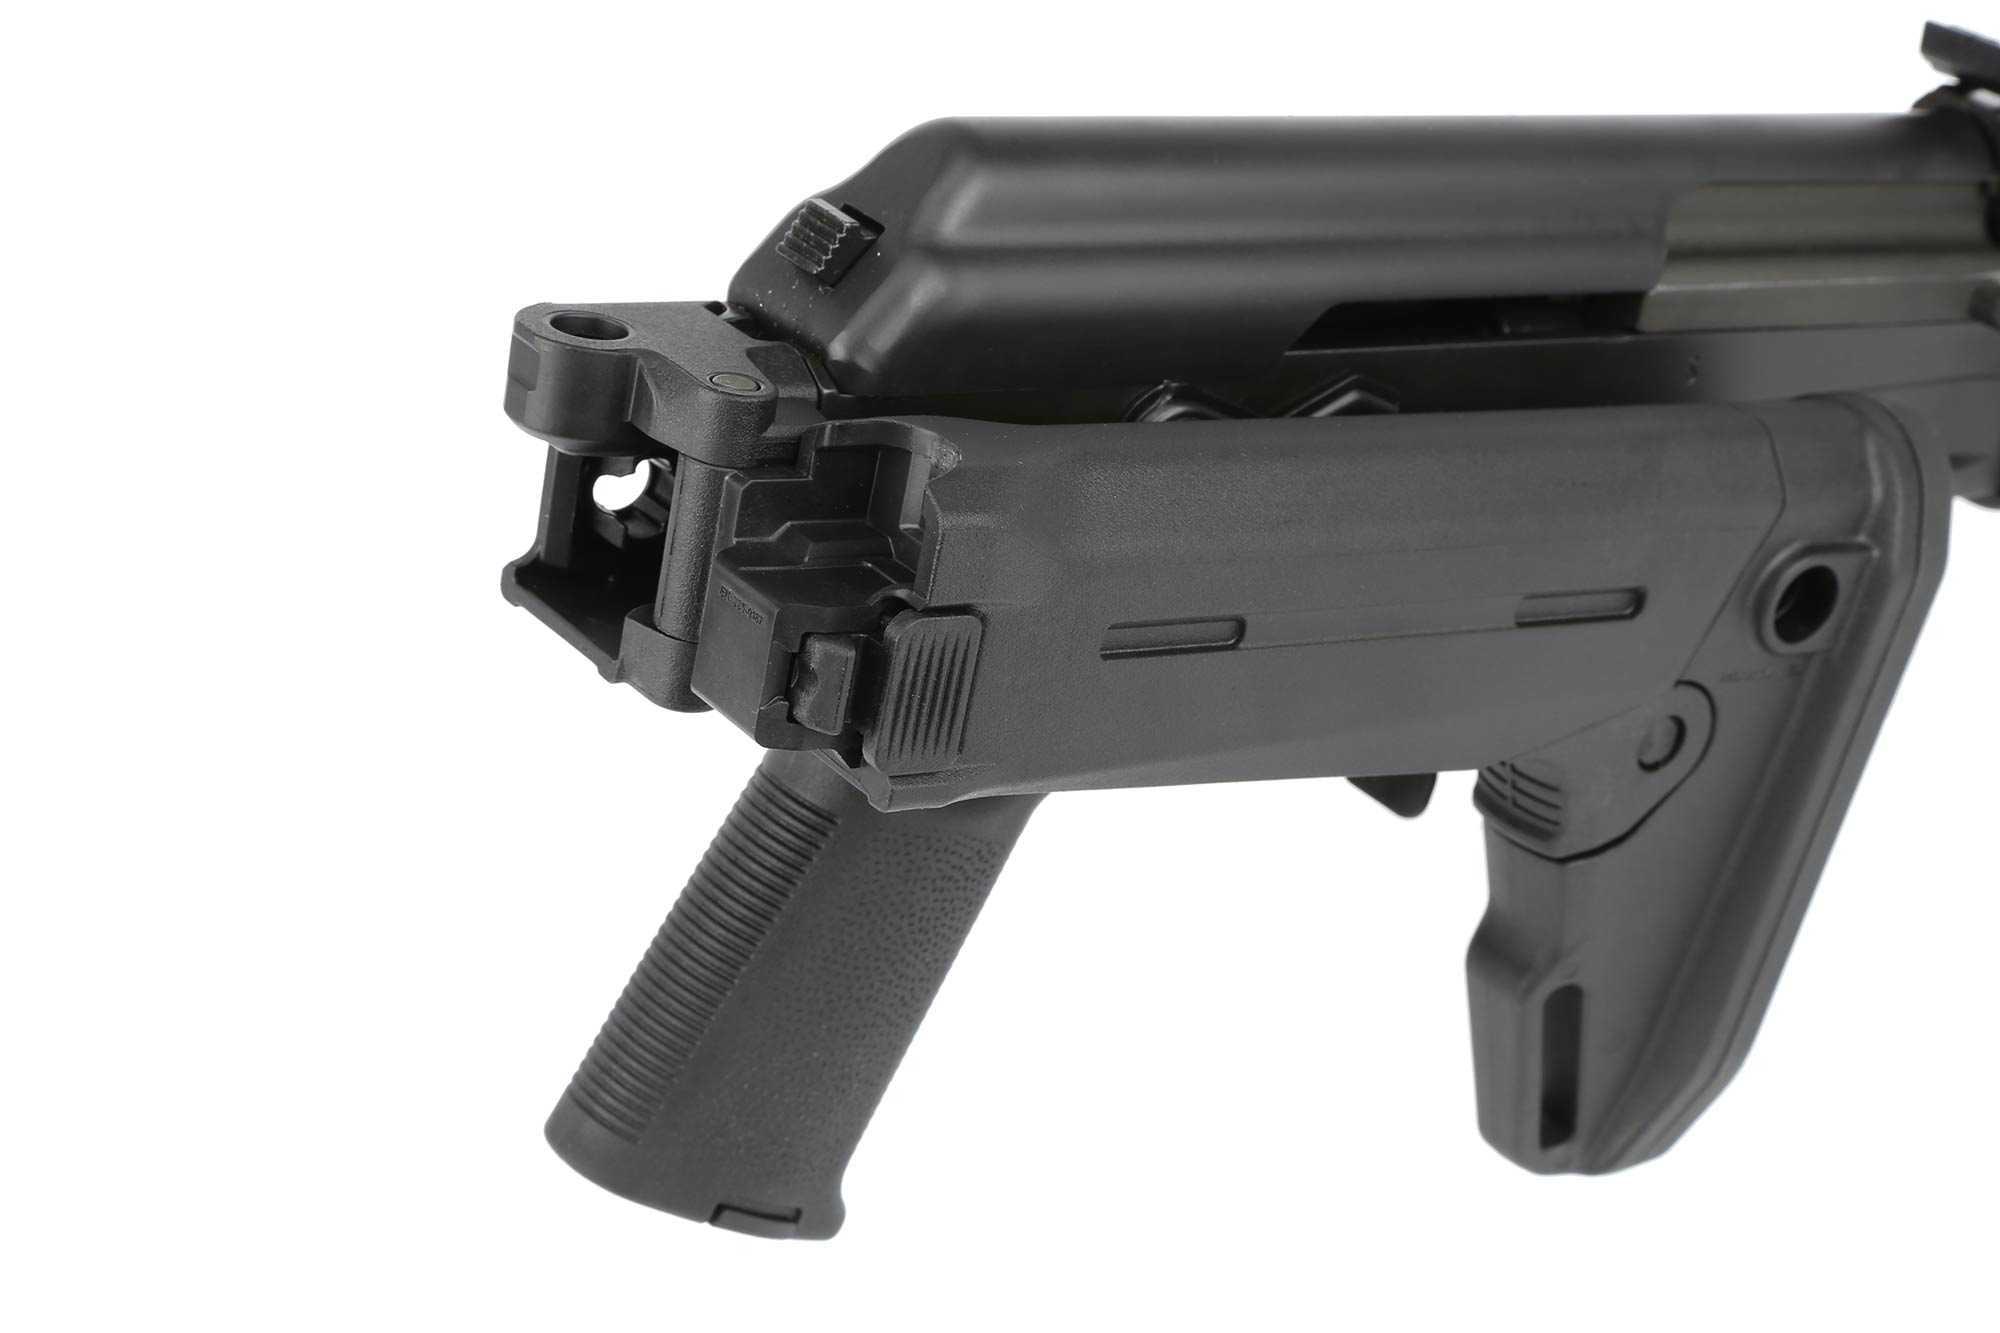 The Century International Arms C39 AK has a side folding stock adapter for a compact rifle setup